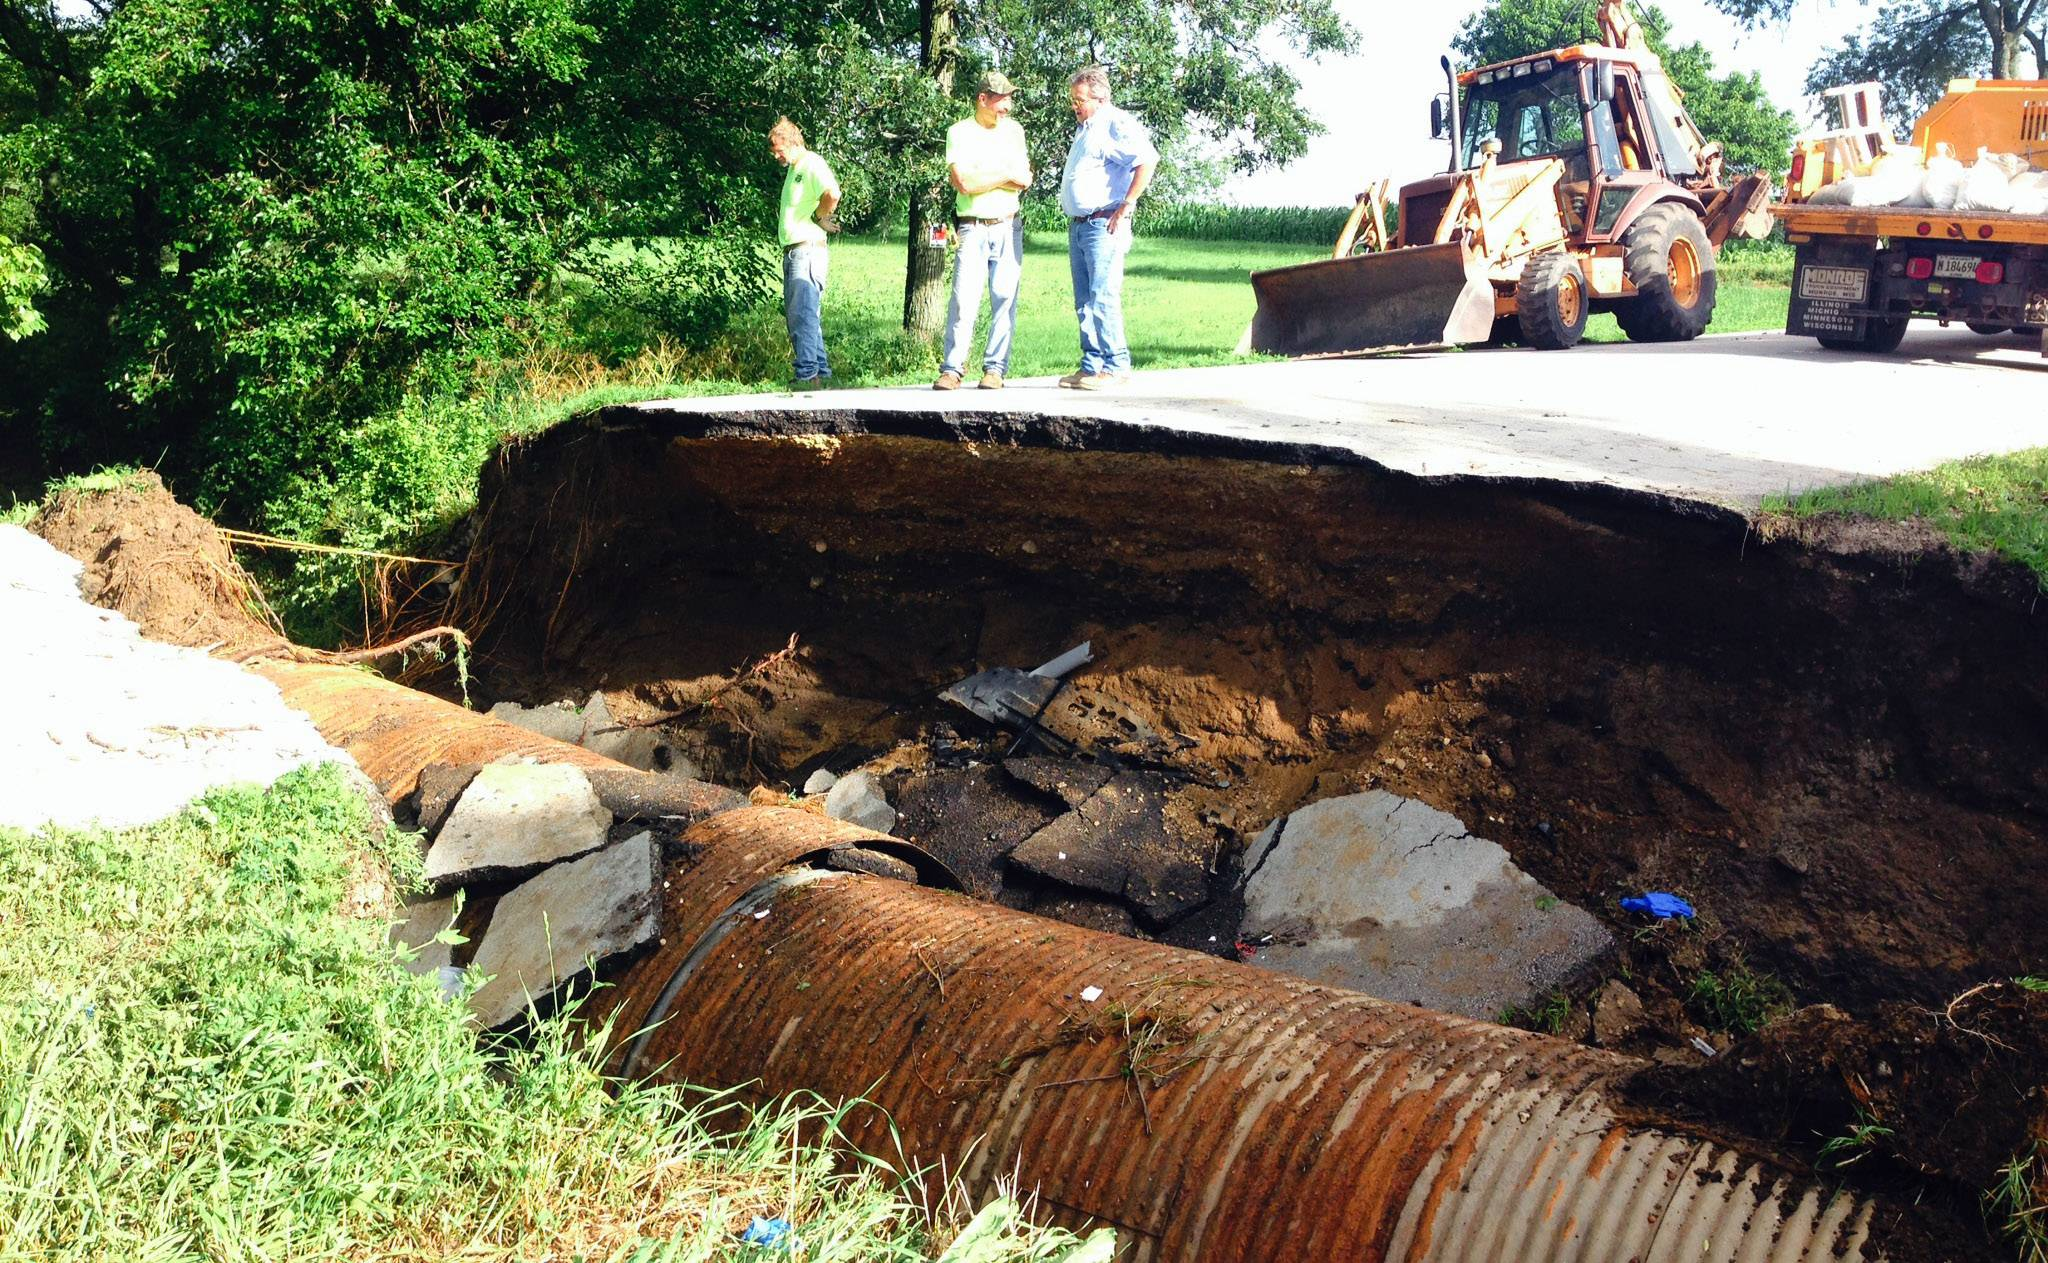 Road crews survey the damage at Thomas and McDonald roads in Kane County after storms washed out the road, creating a large sinkhole that a car later drove into.